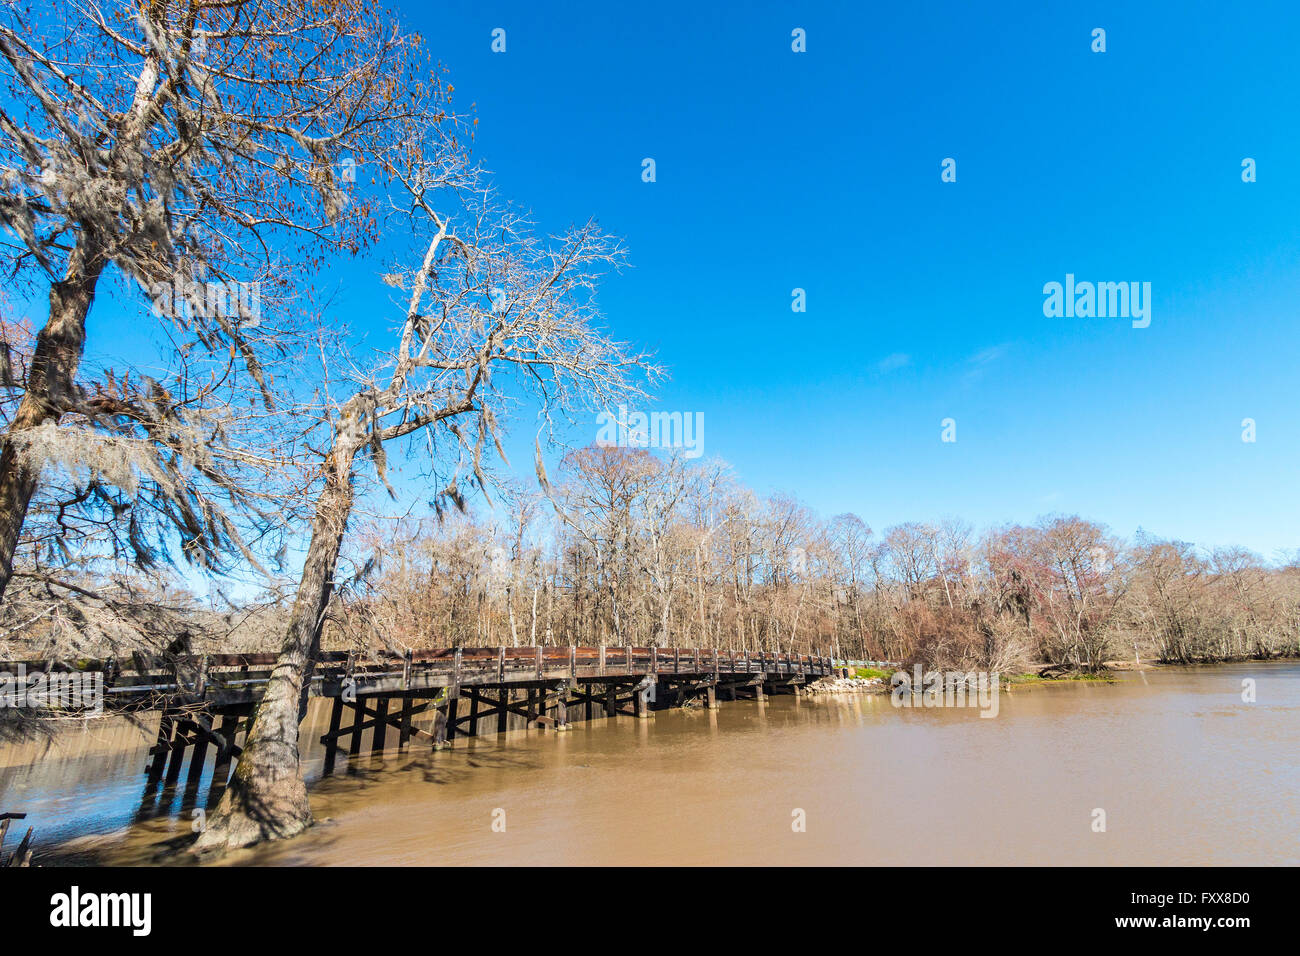 Lorrain Bridge in Hayes, LA, an old historic wooden bridge with the quintessential Cajun backdrop. Built in the - Stock Image